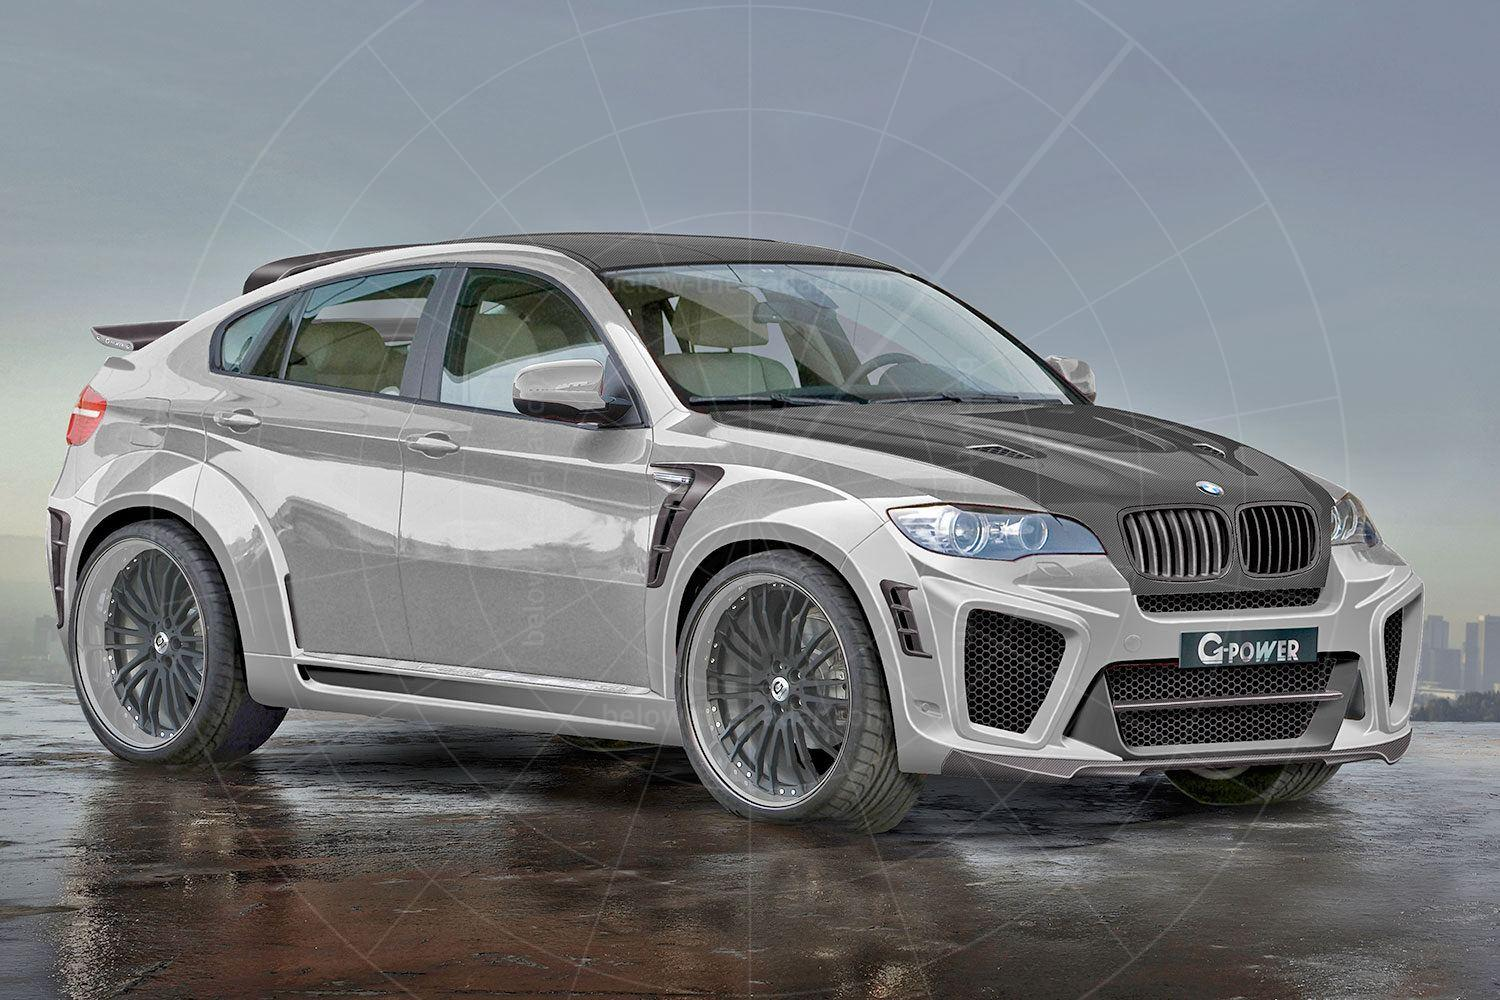 G-Power X6 M Typhoon RS V10 Pic: G-Power | G-Power X6 M Typhoon RS V10